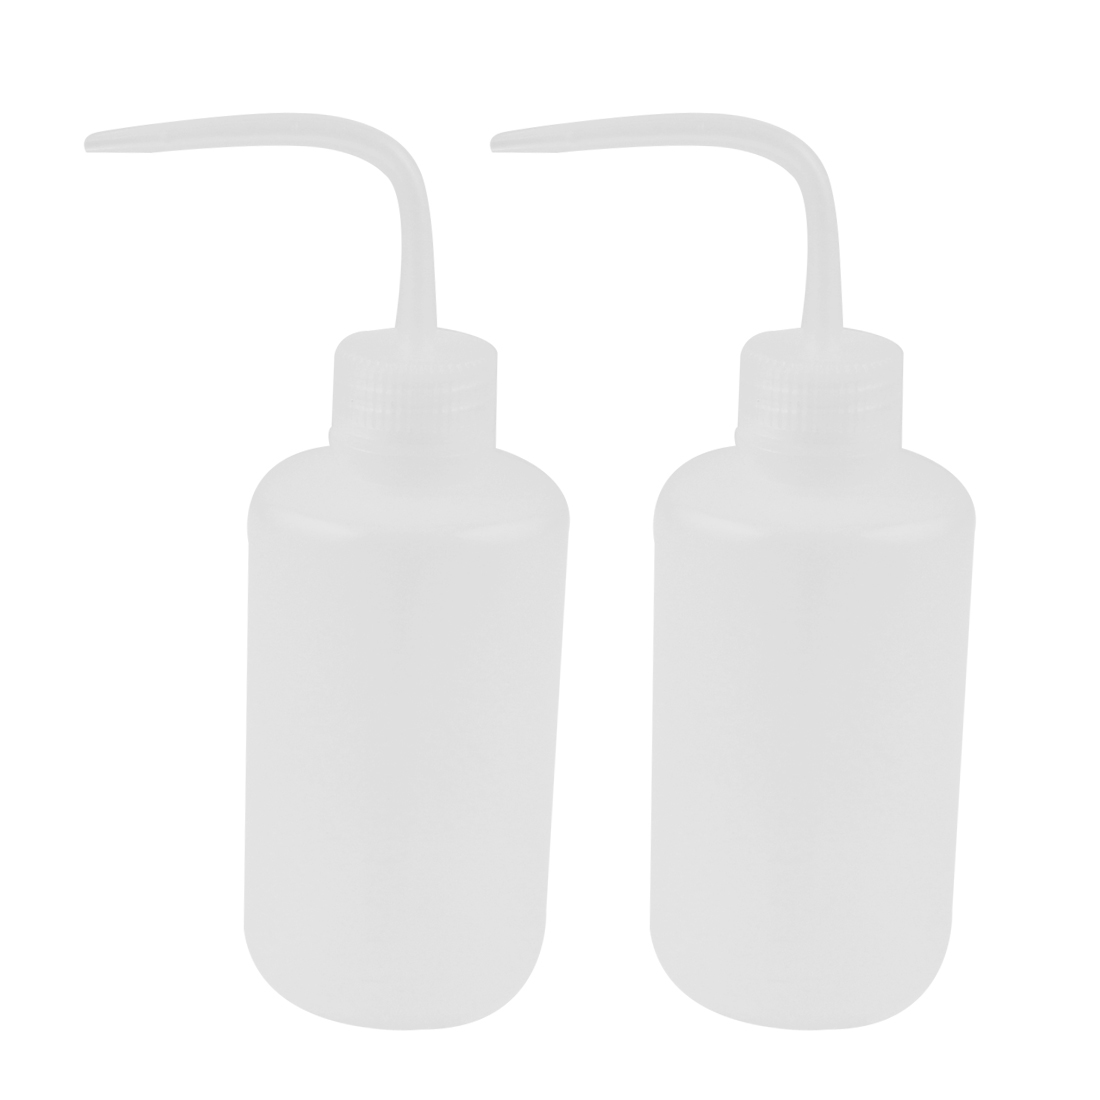 250mL Right Angle Bent Tip Plastic Liquid Storage Squeeze Bottle Dispenser 2pcs